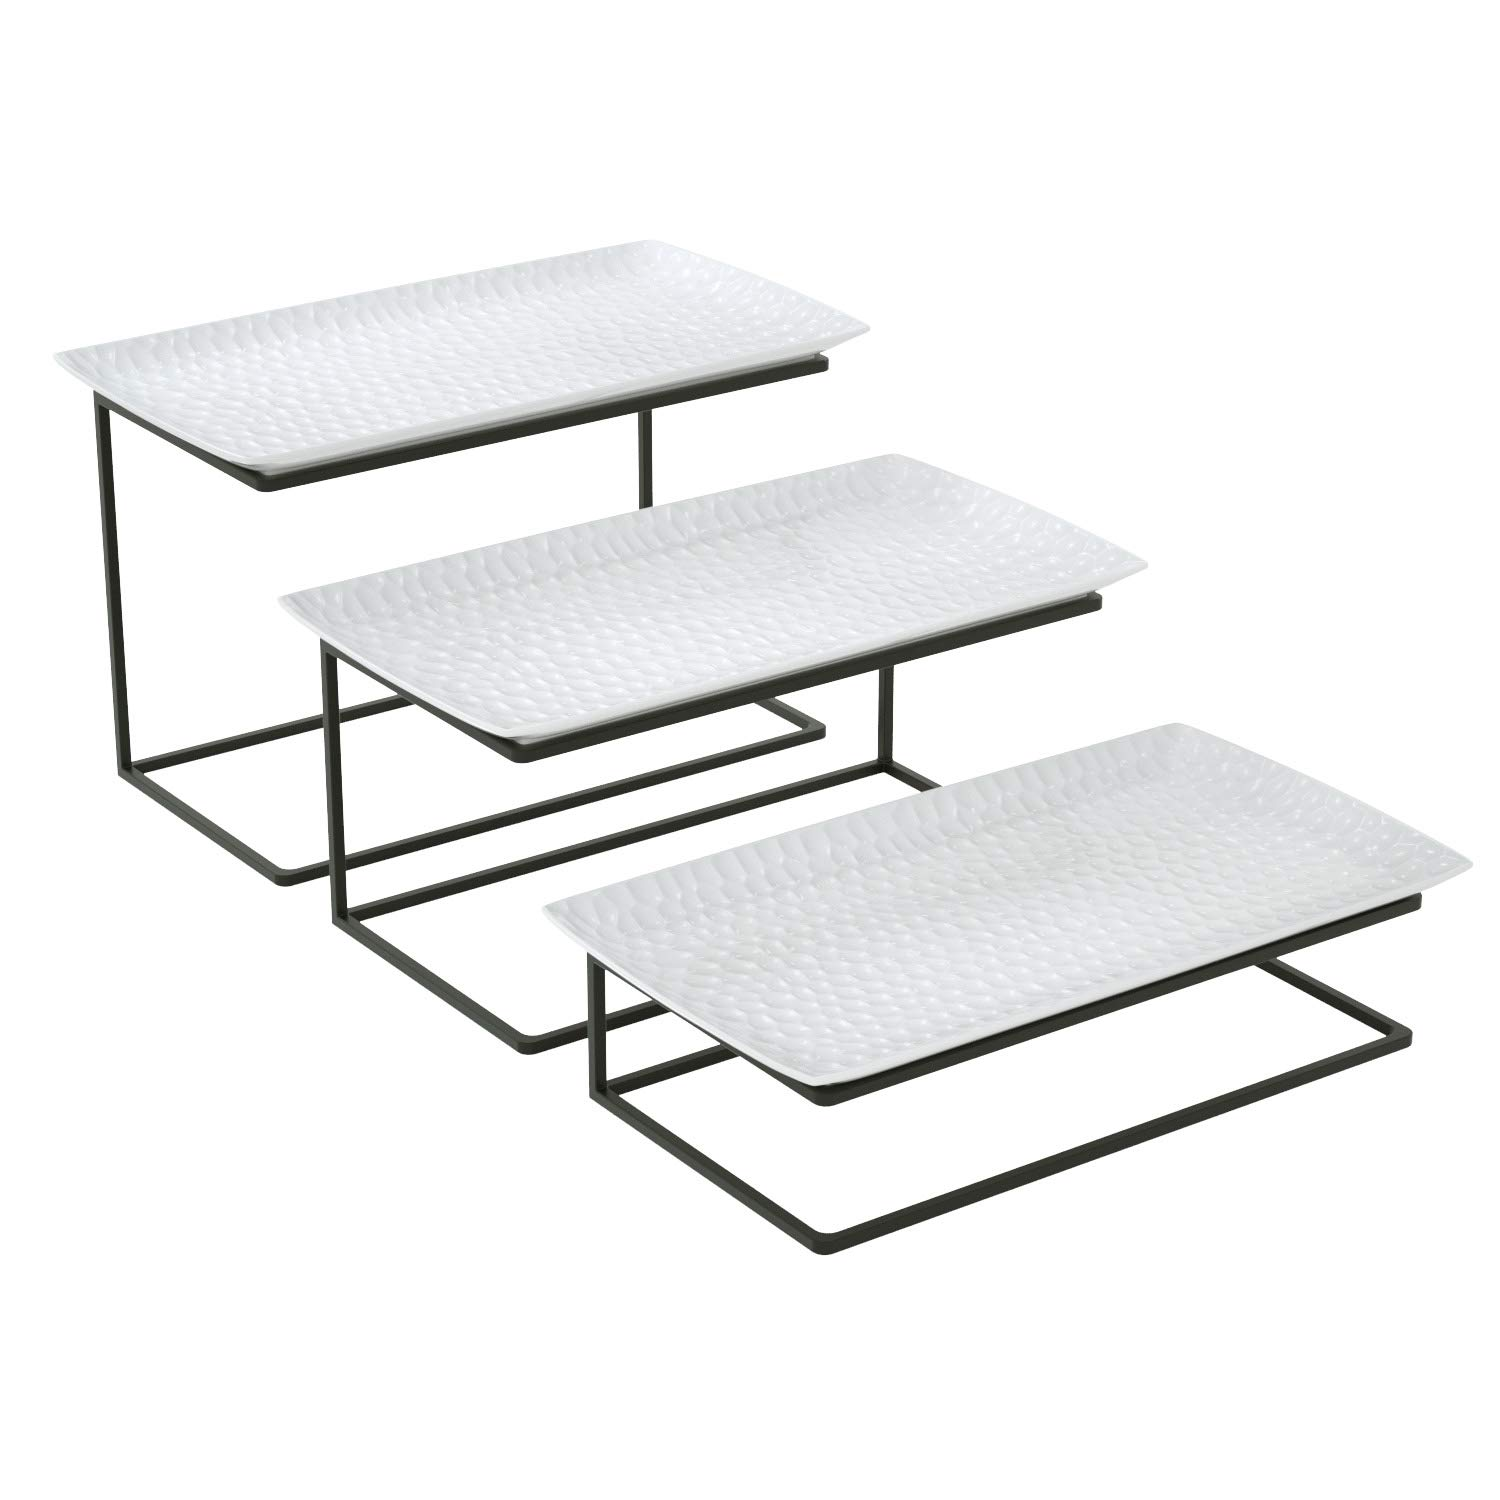 Love-KANKEI Three Tier Serving Tray - Free Combination Tiered Serving Stand for Party with 3 White Rectangular Platters to Display Food